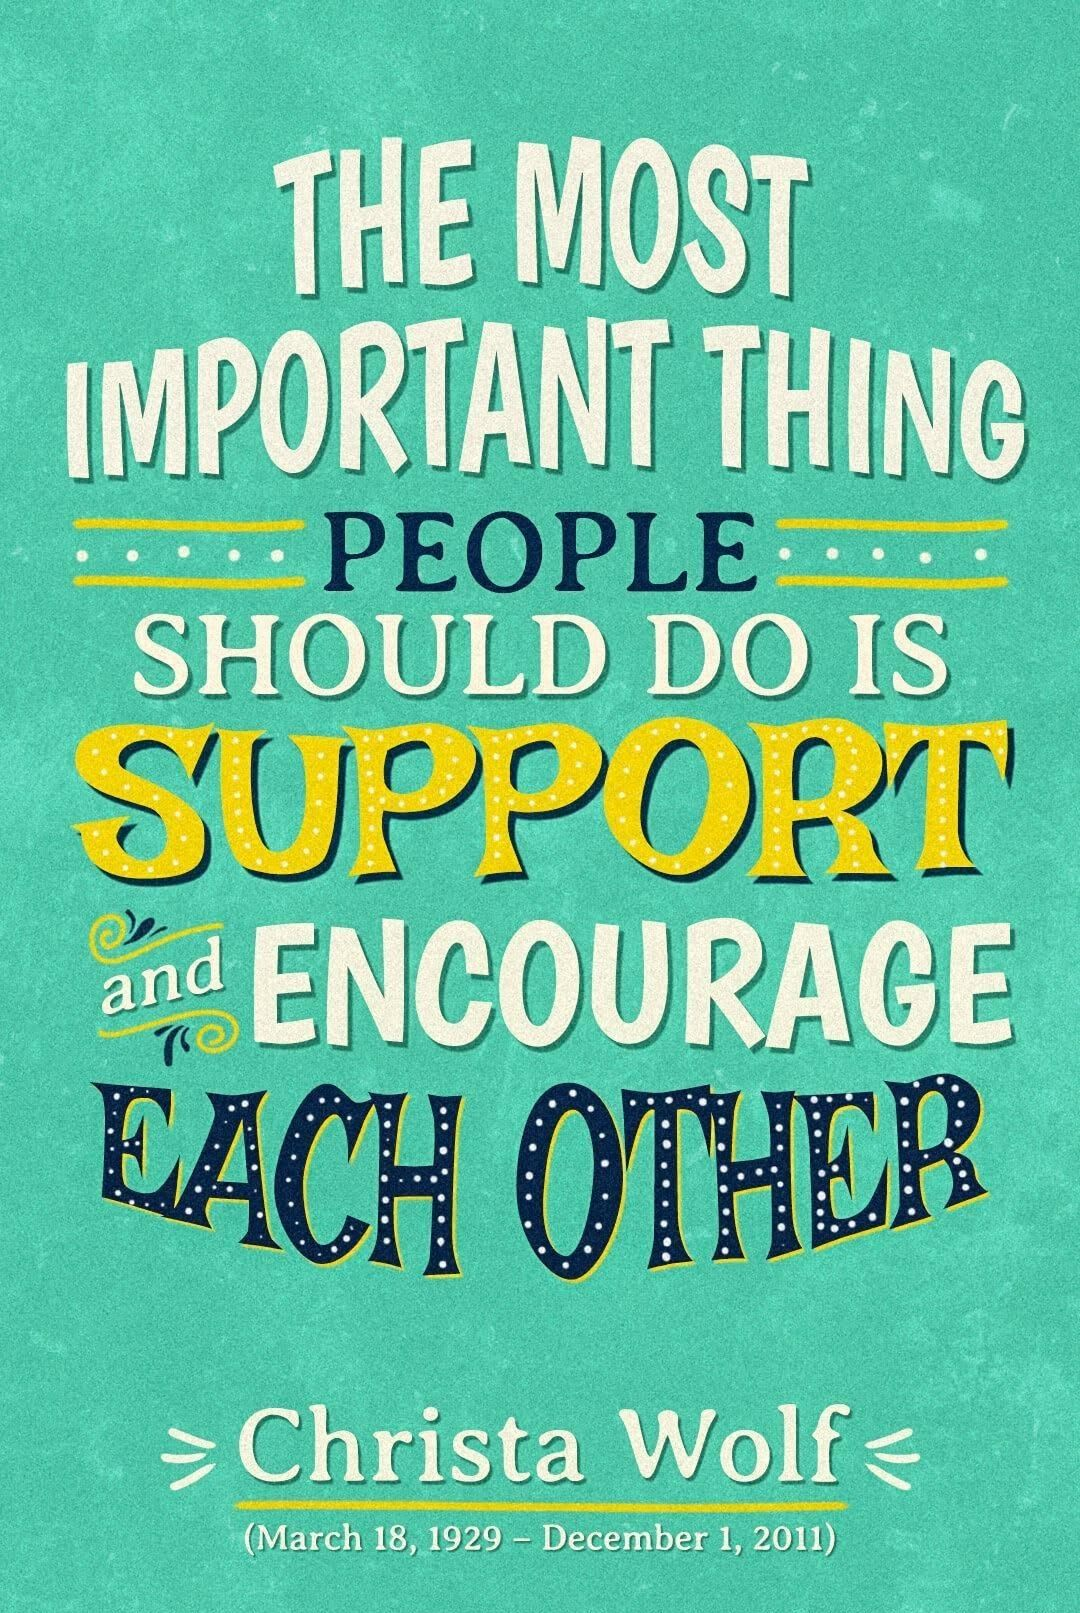 Good Quotes - The most important thing people should do is